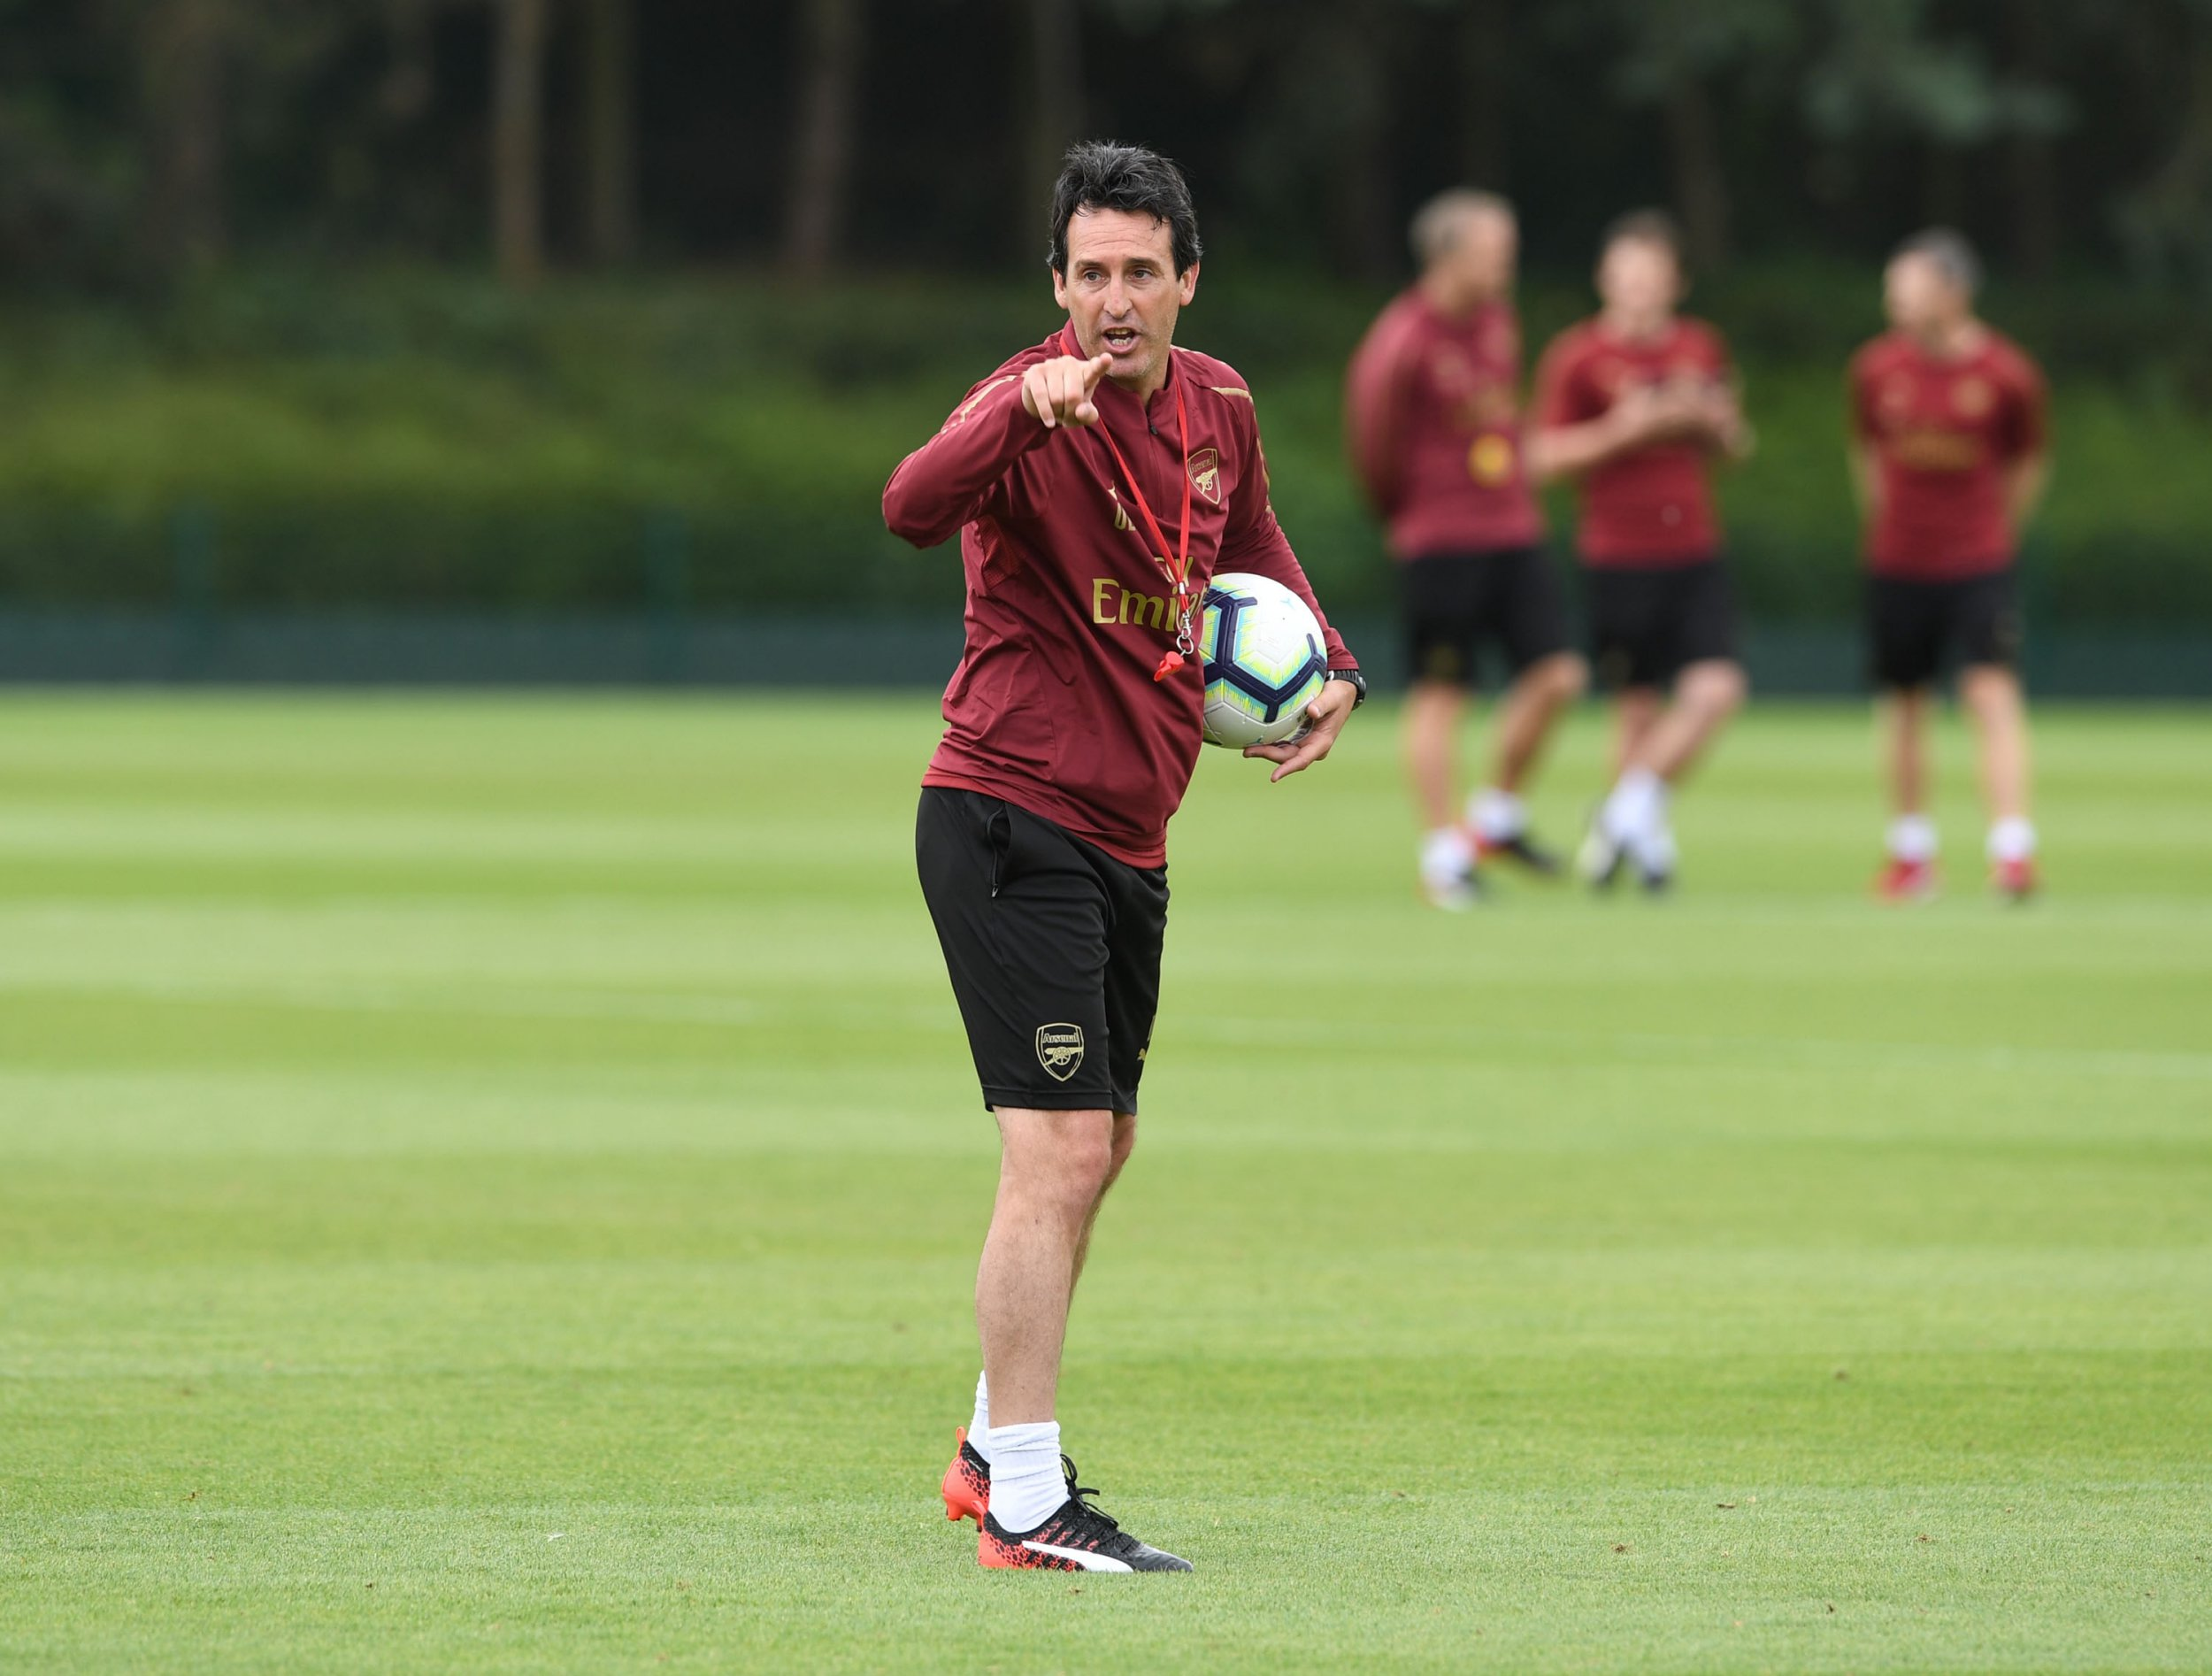 ST ALBANS, ENGLAND - JULY 10: Arsenal Head Coach Unai Emery during a training session at London Colney on July 10, 2018 in St Albans, England. (Photo by Stuart MacFarlane/Arsenal FC via Getty Images)